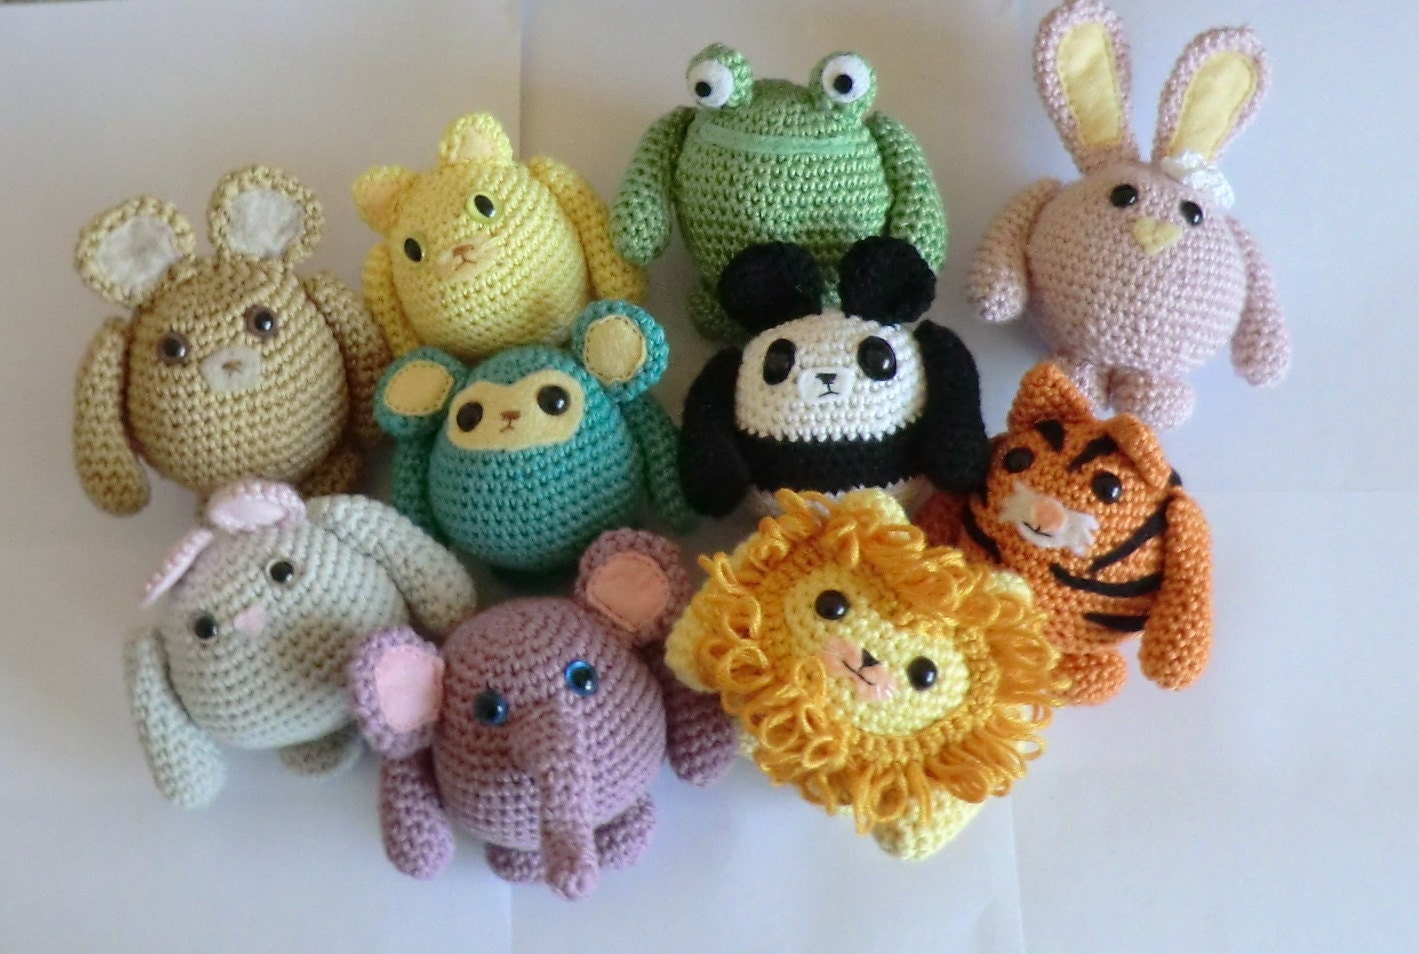 Fat friends animal amigurumi crochet patterns by ...